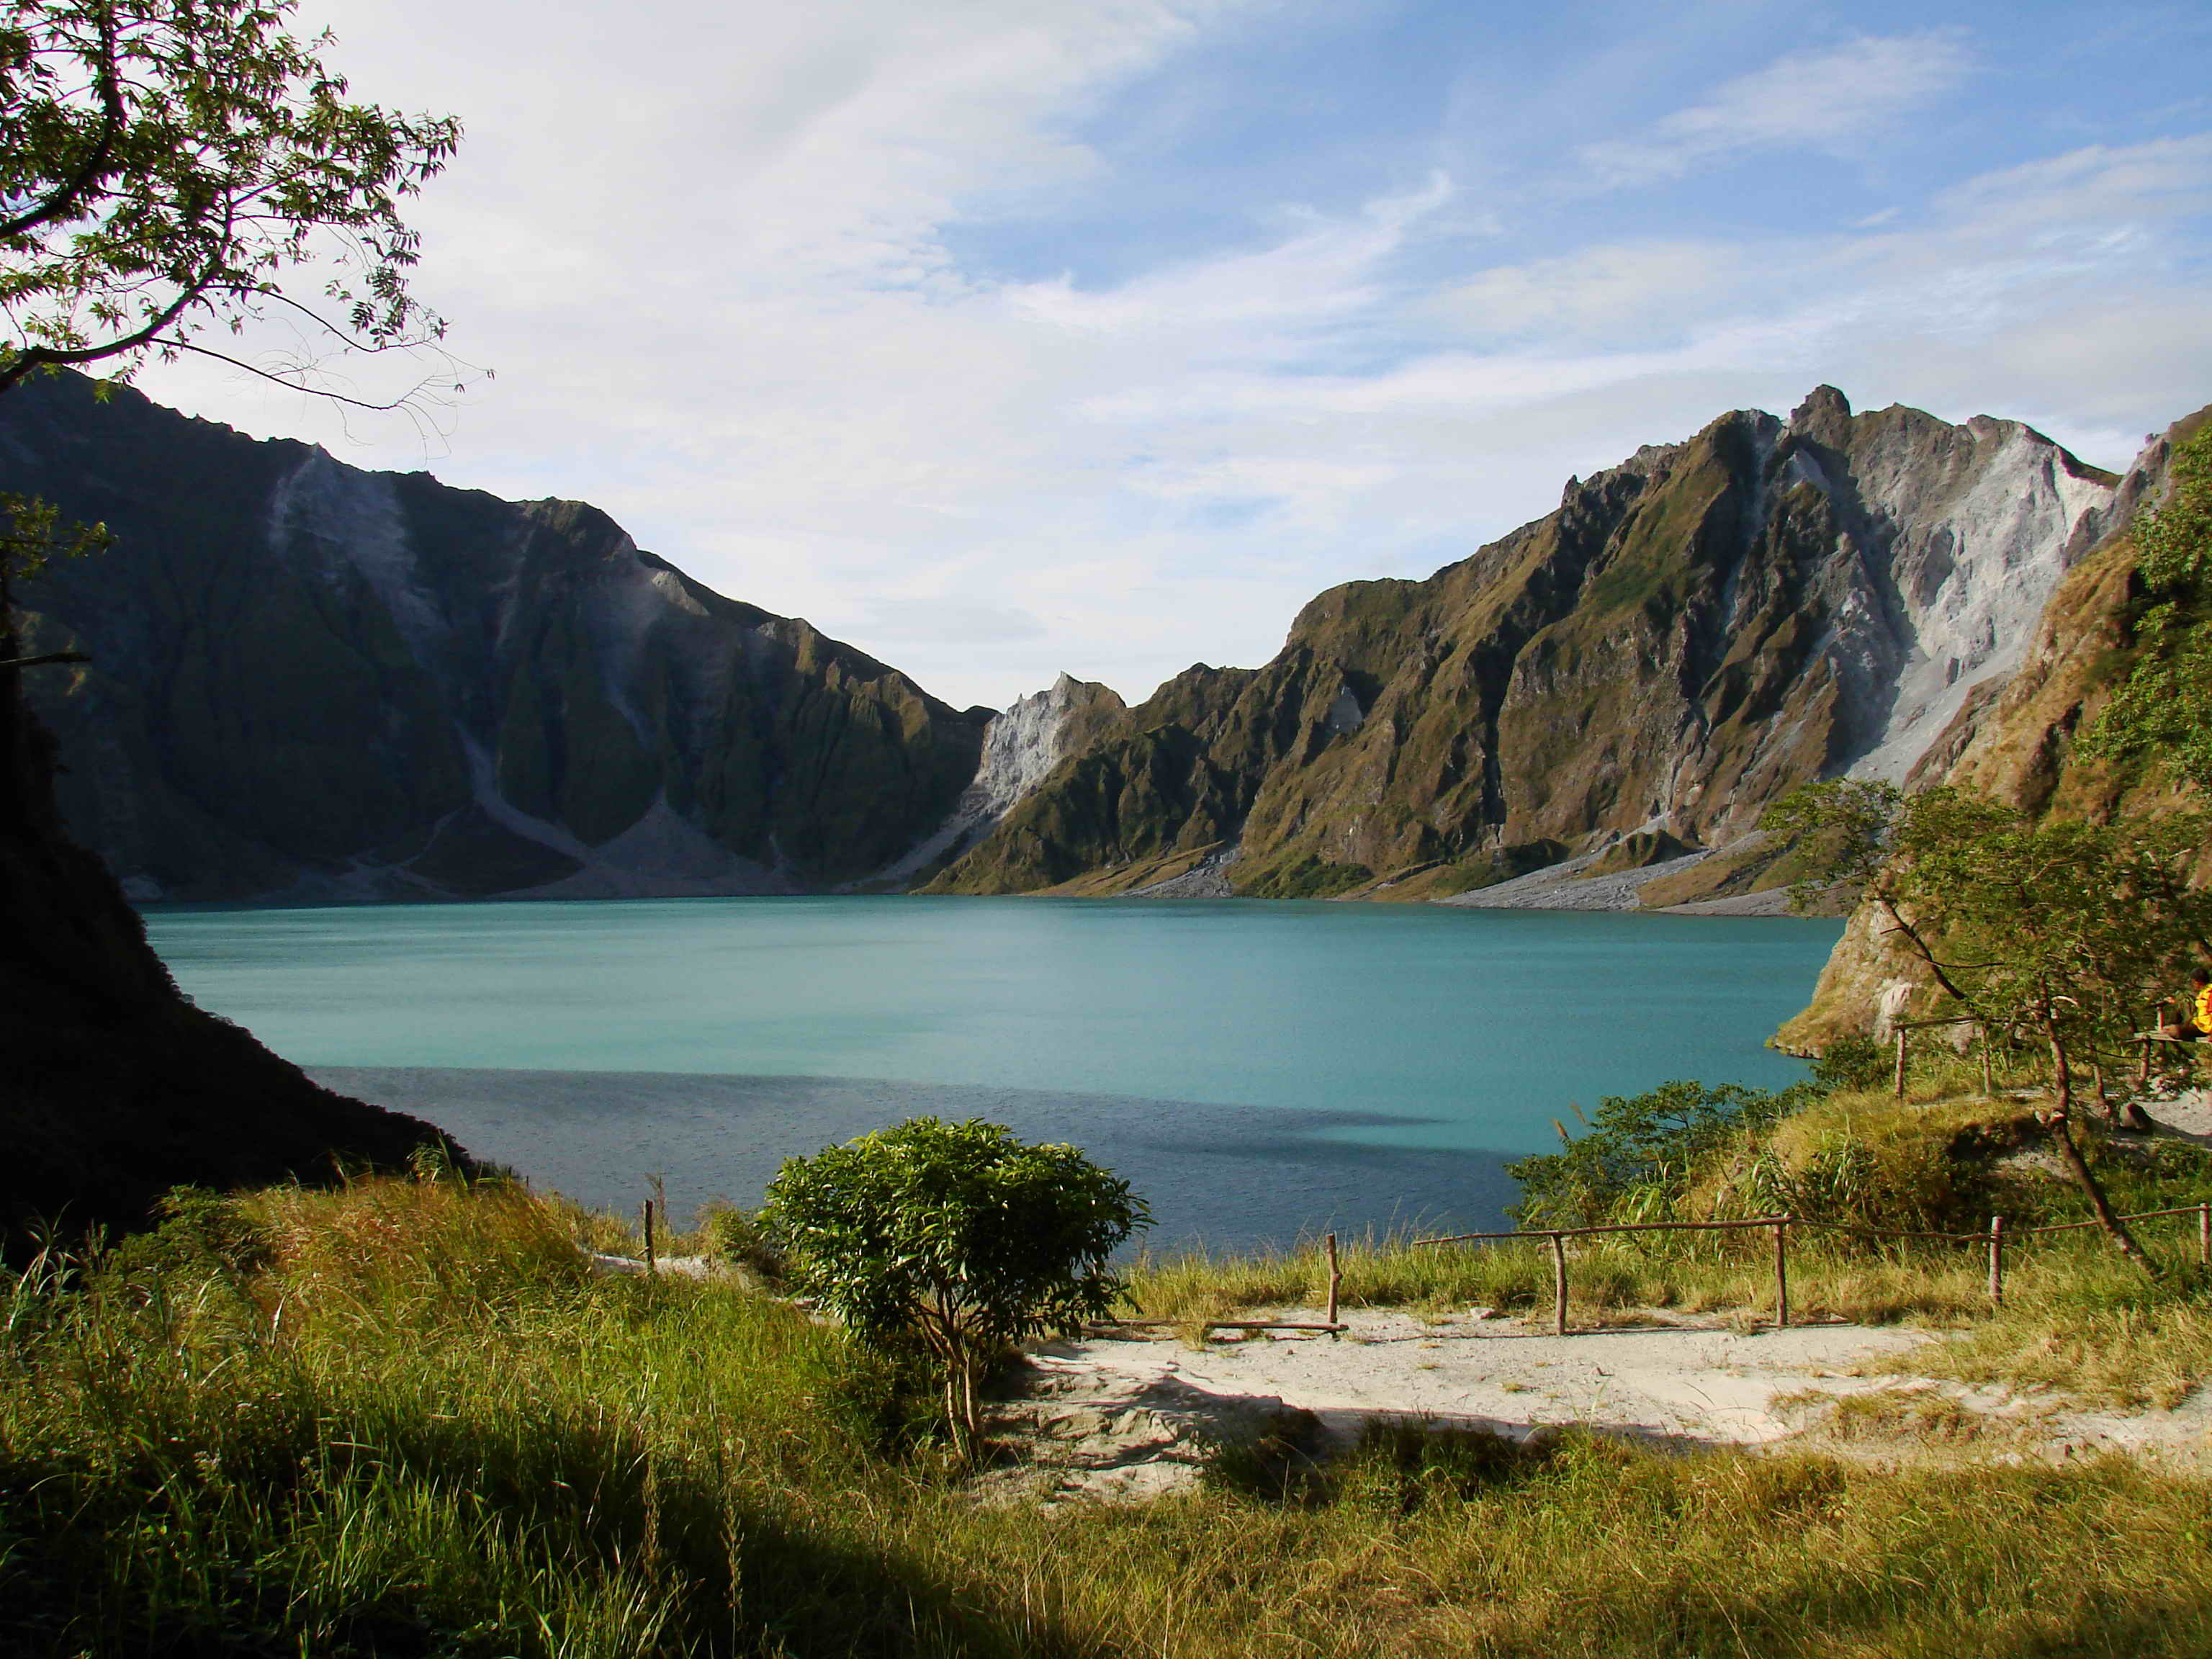 mount pinatubo height